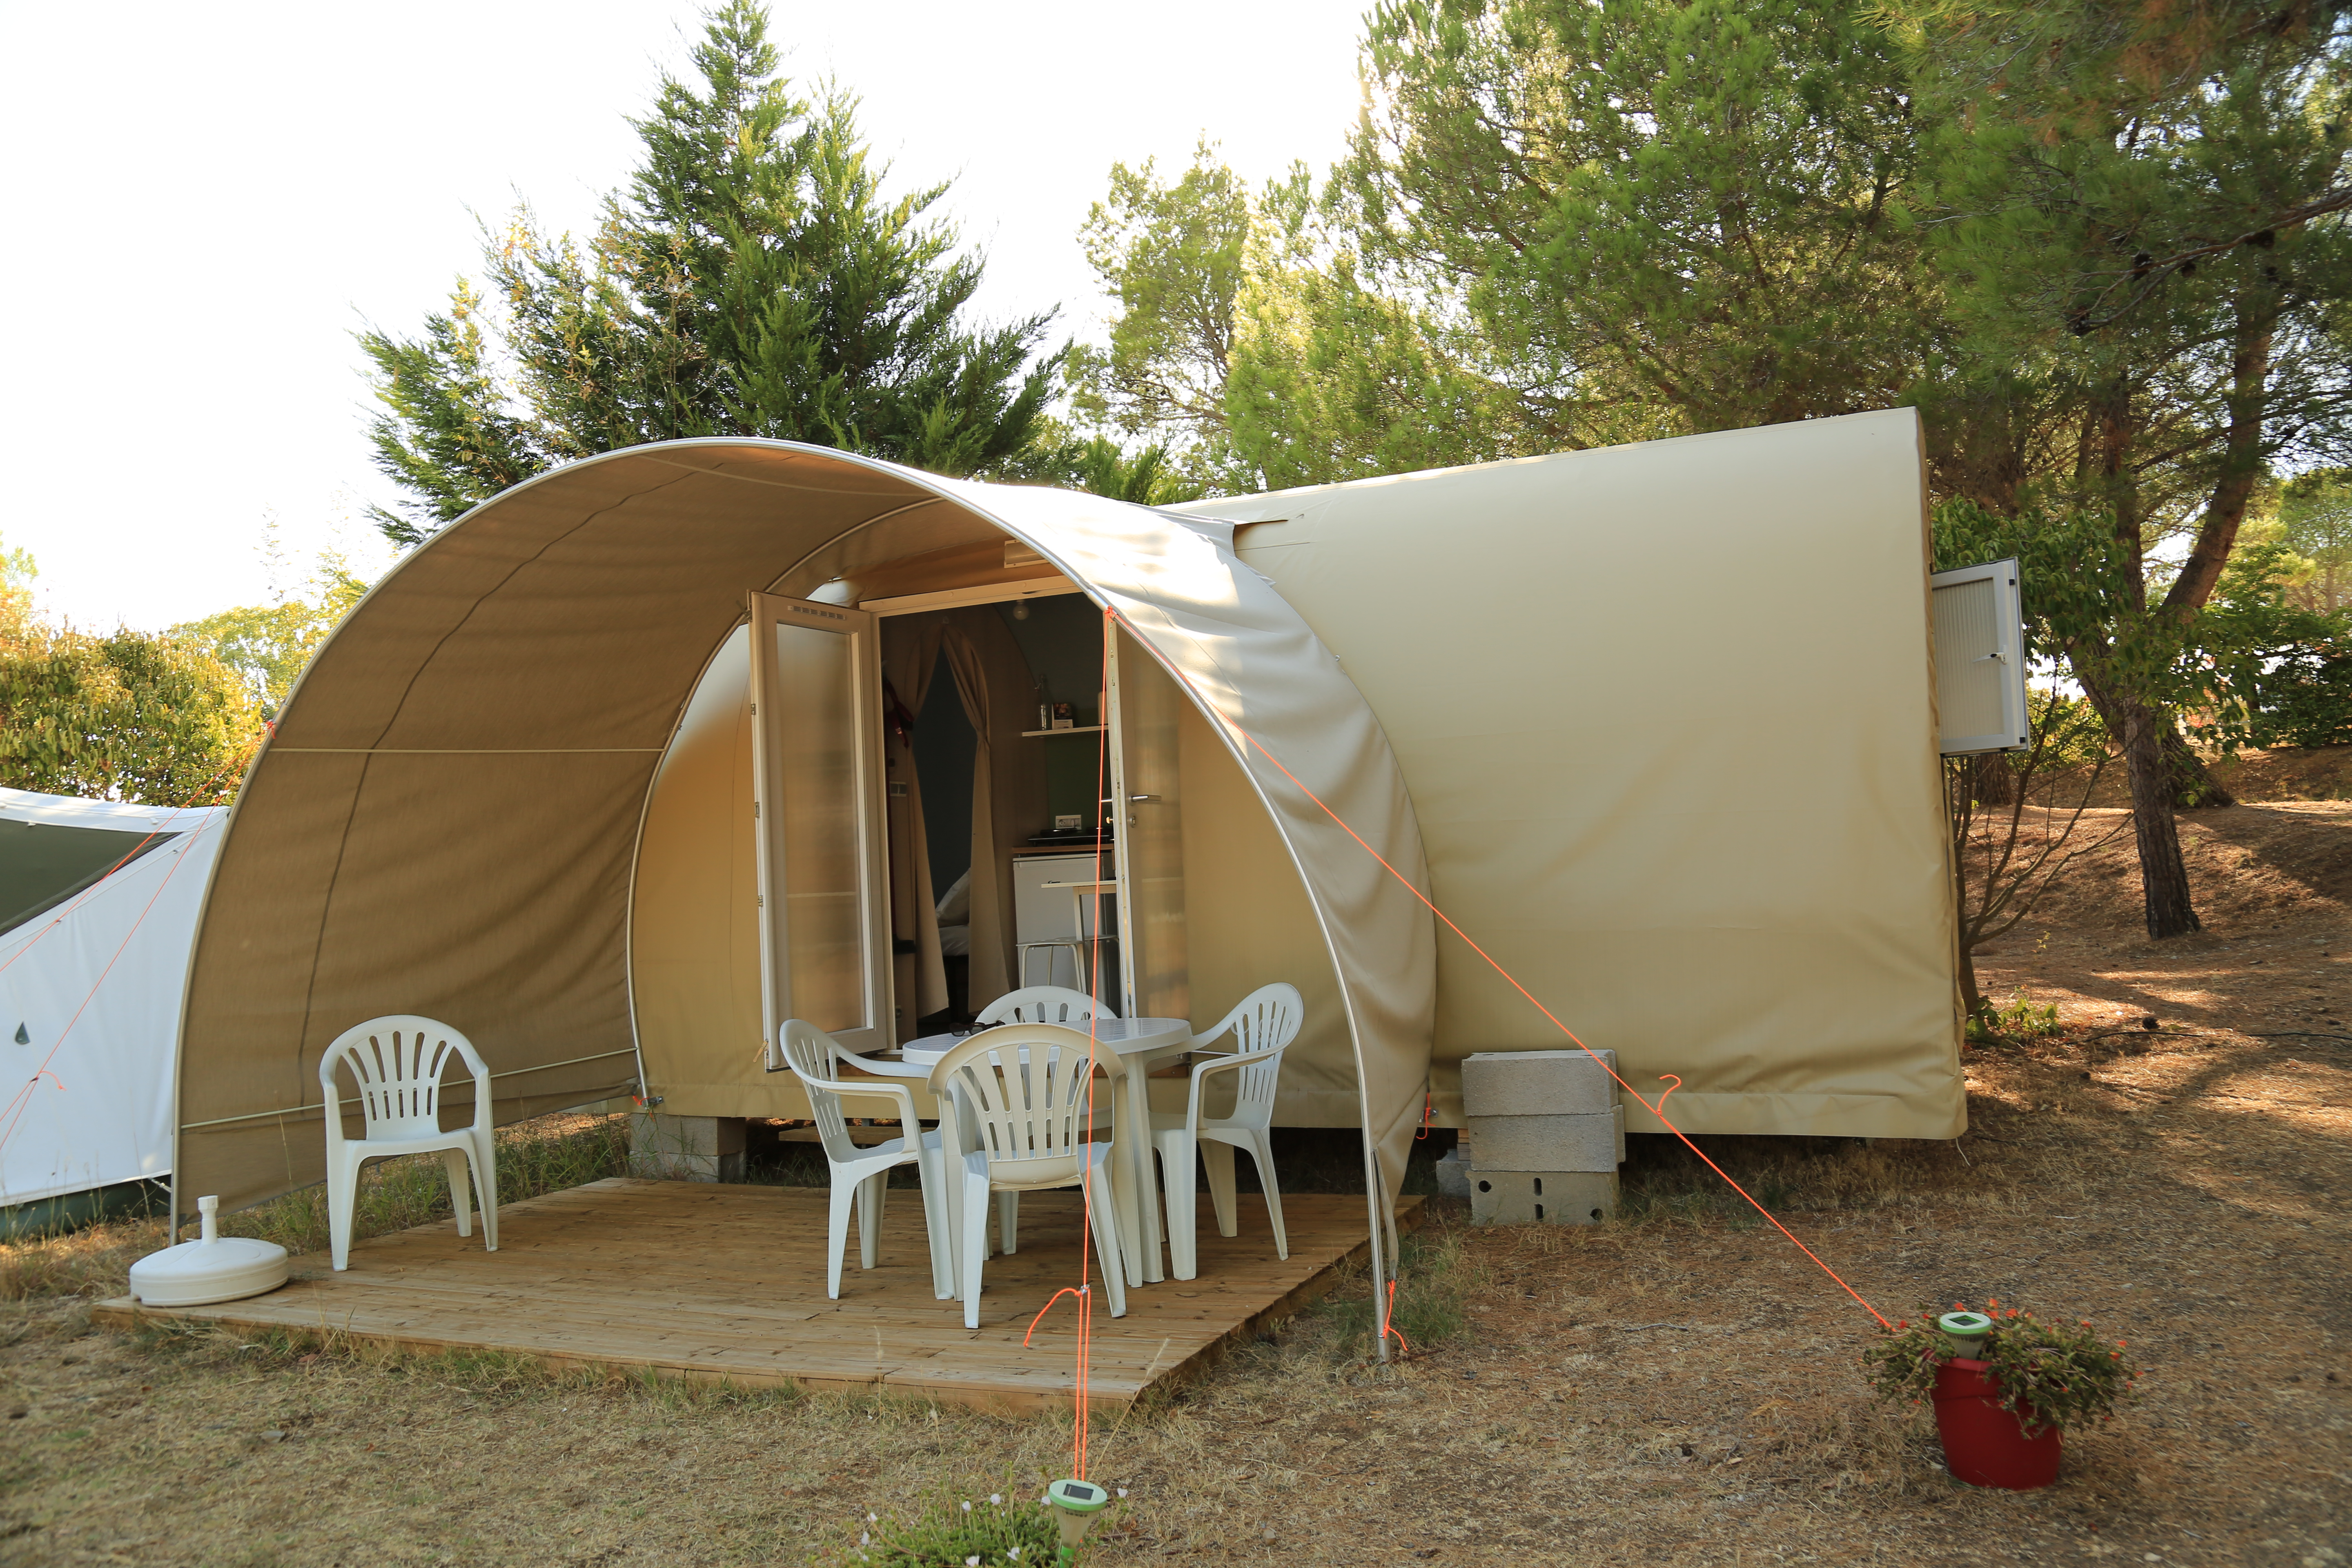 Camping Douche Batterie Les Terrasses Locations